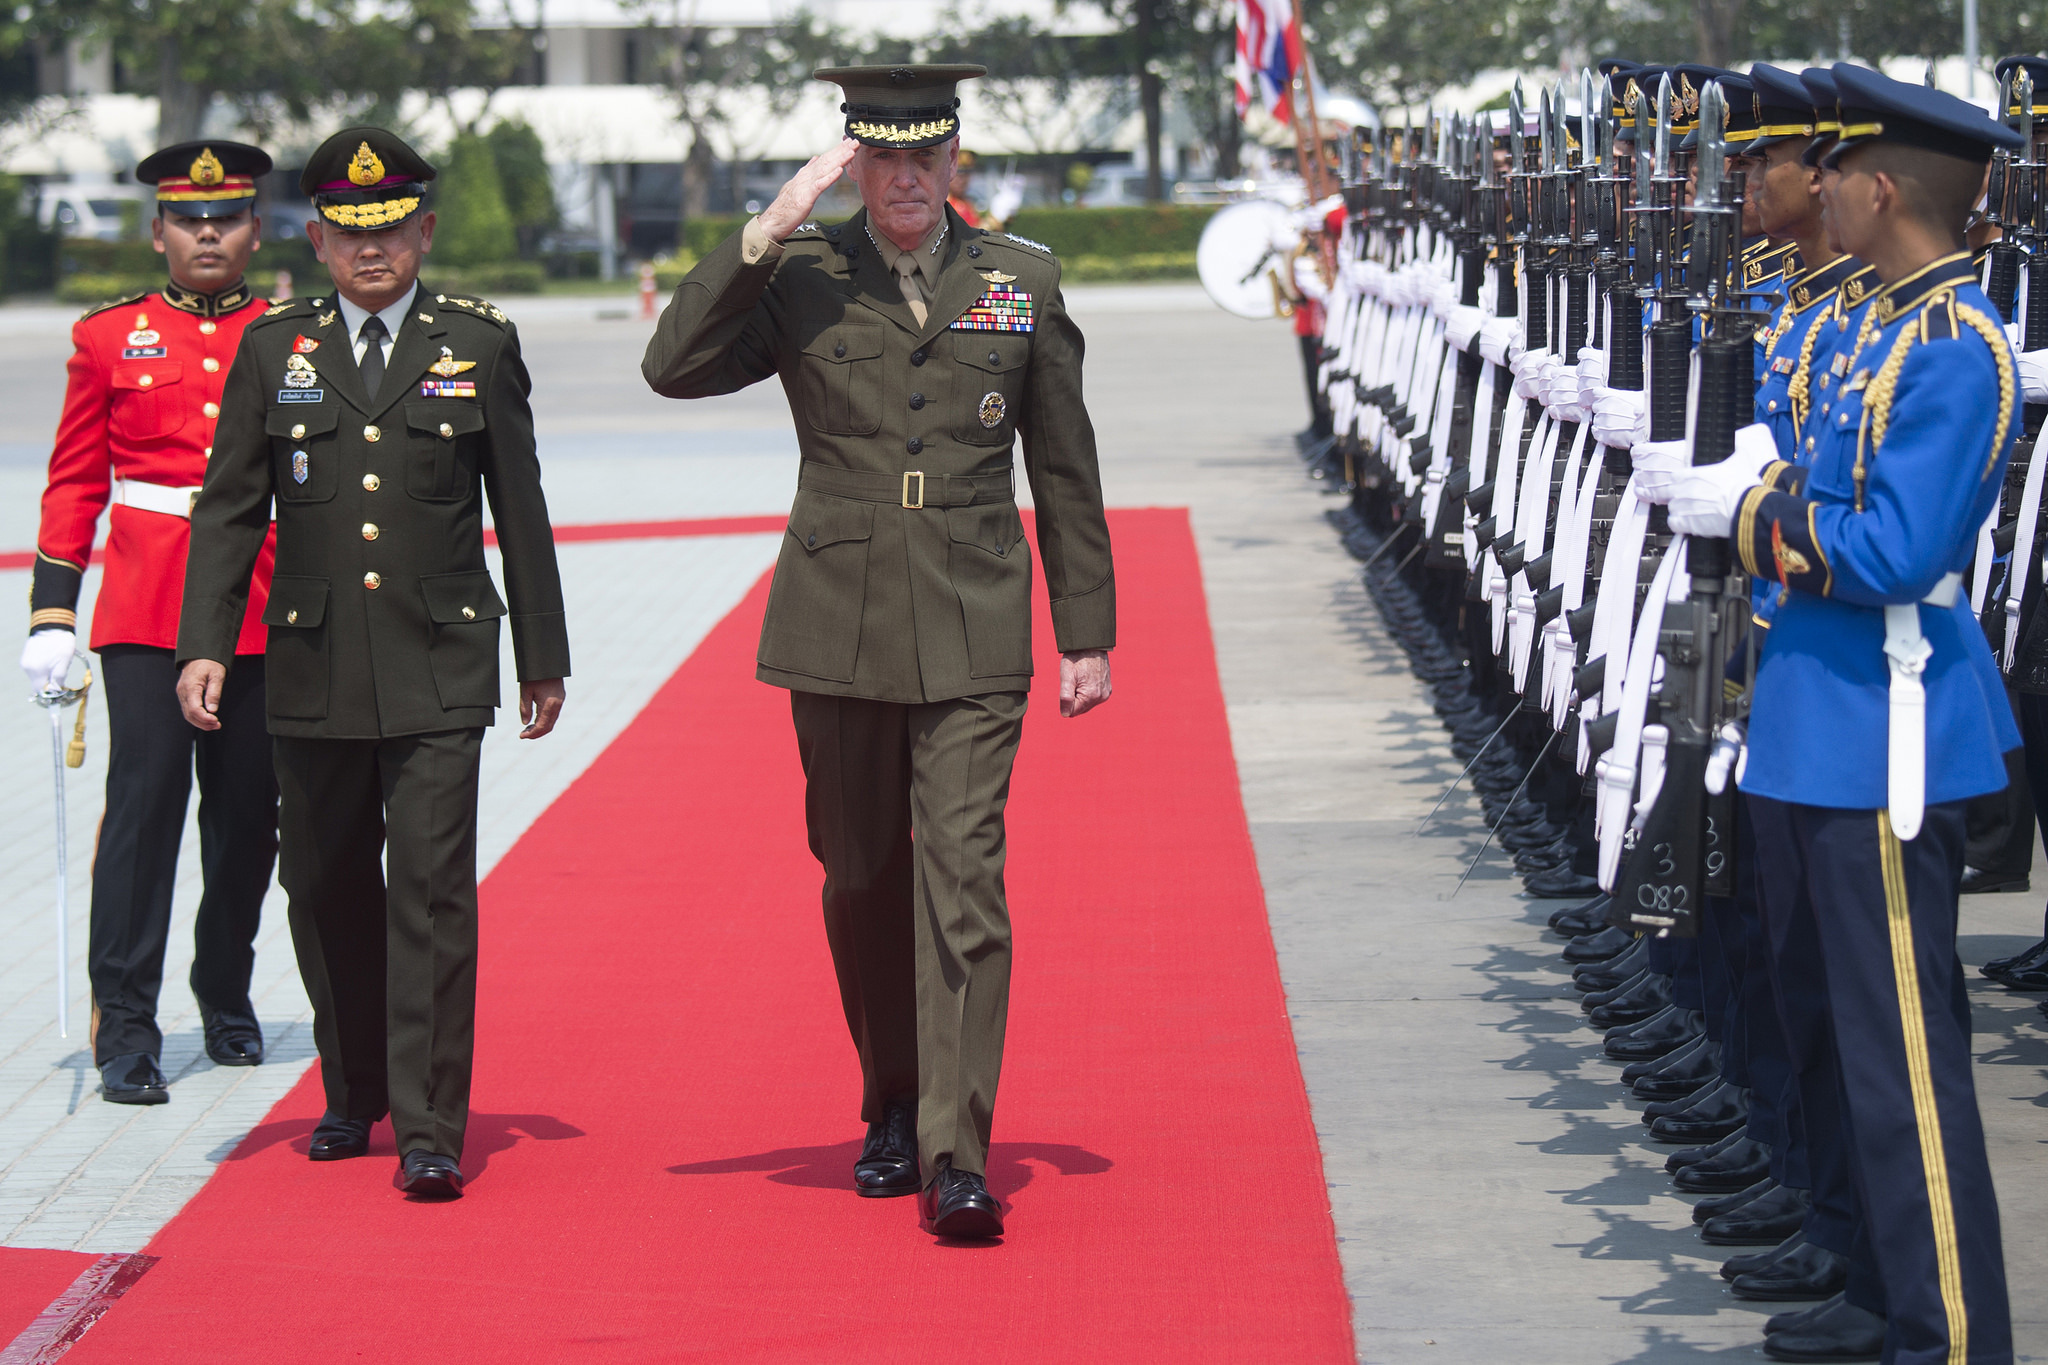 America's History, Future Integral to Pacific, Dunford Says > U S